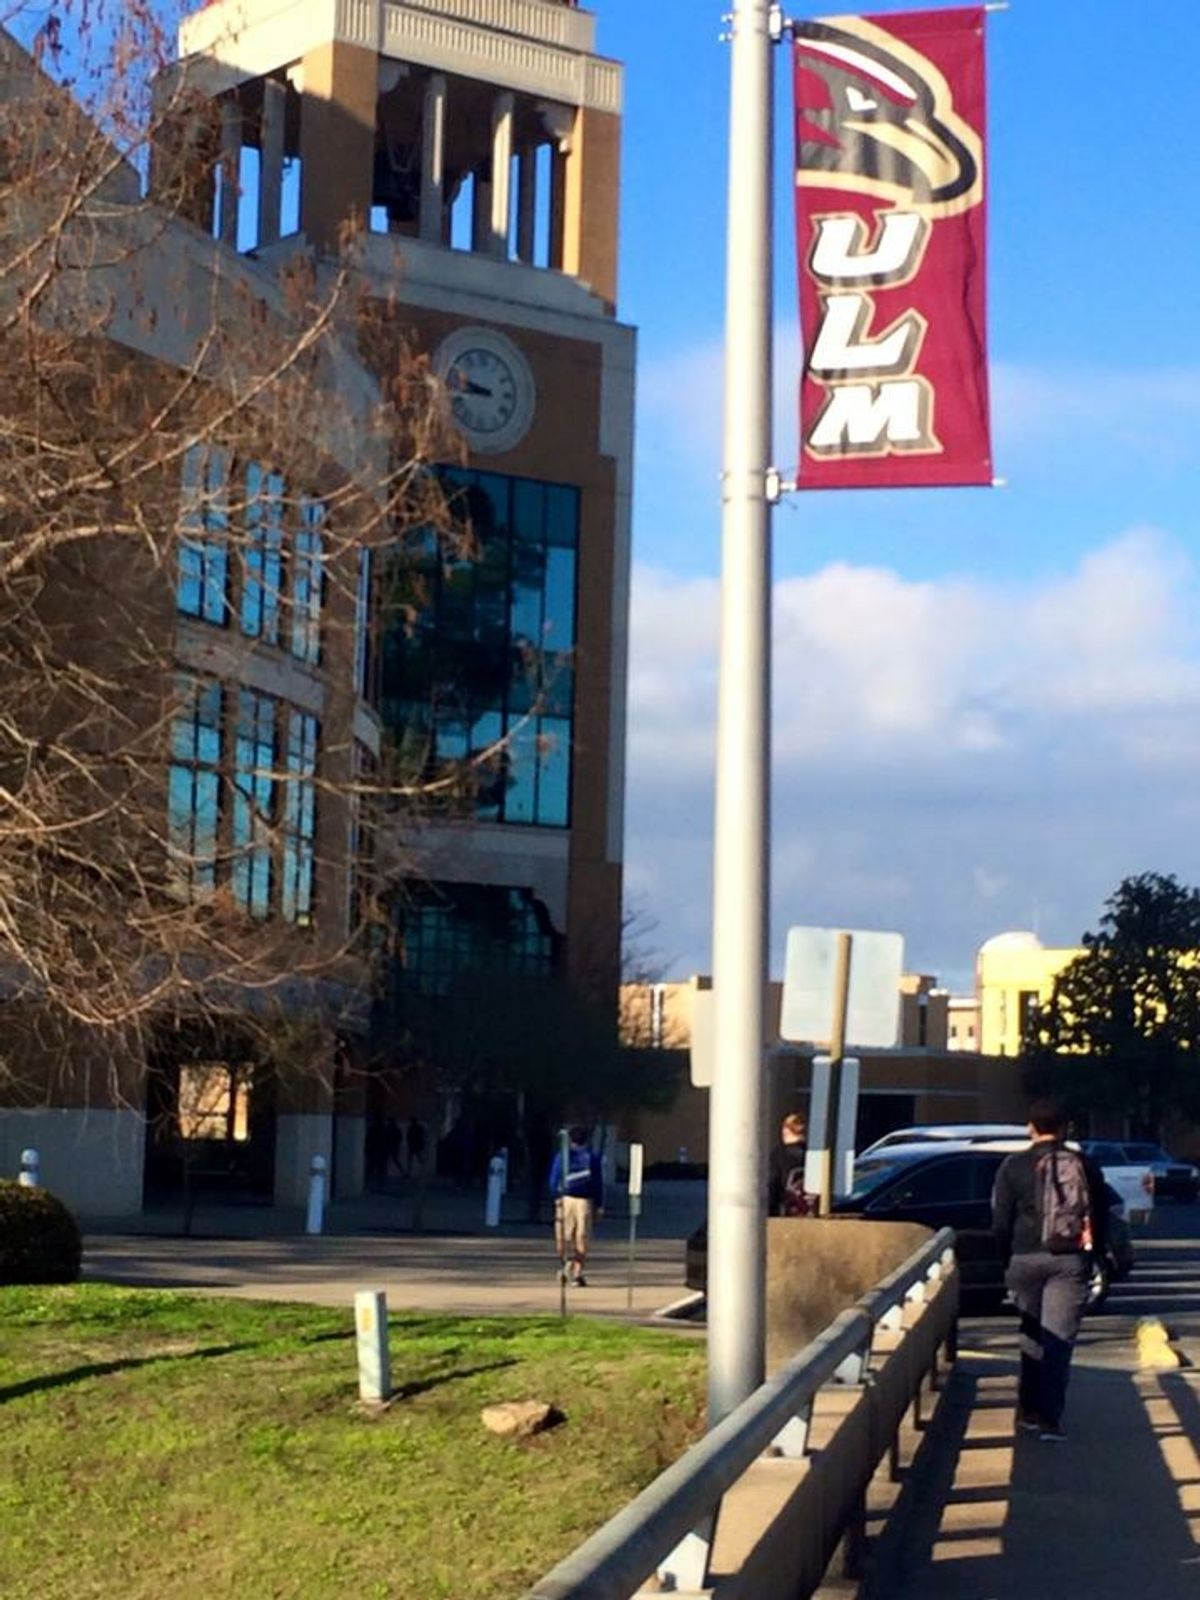 10 Reasons Why I'm Proud To Be A ULM Warhawk